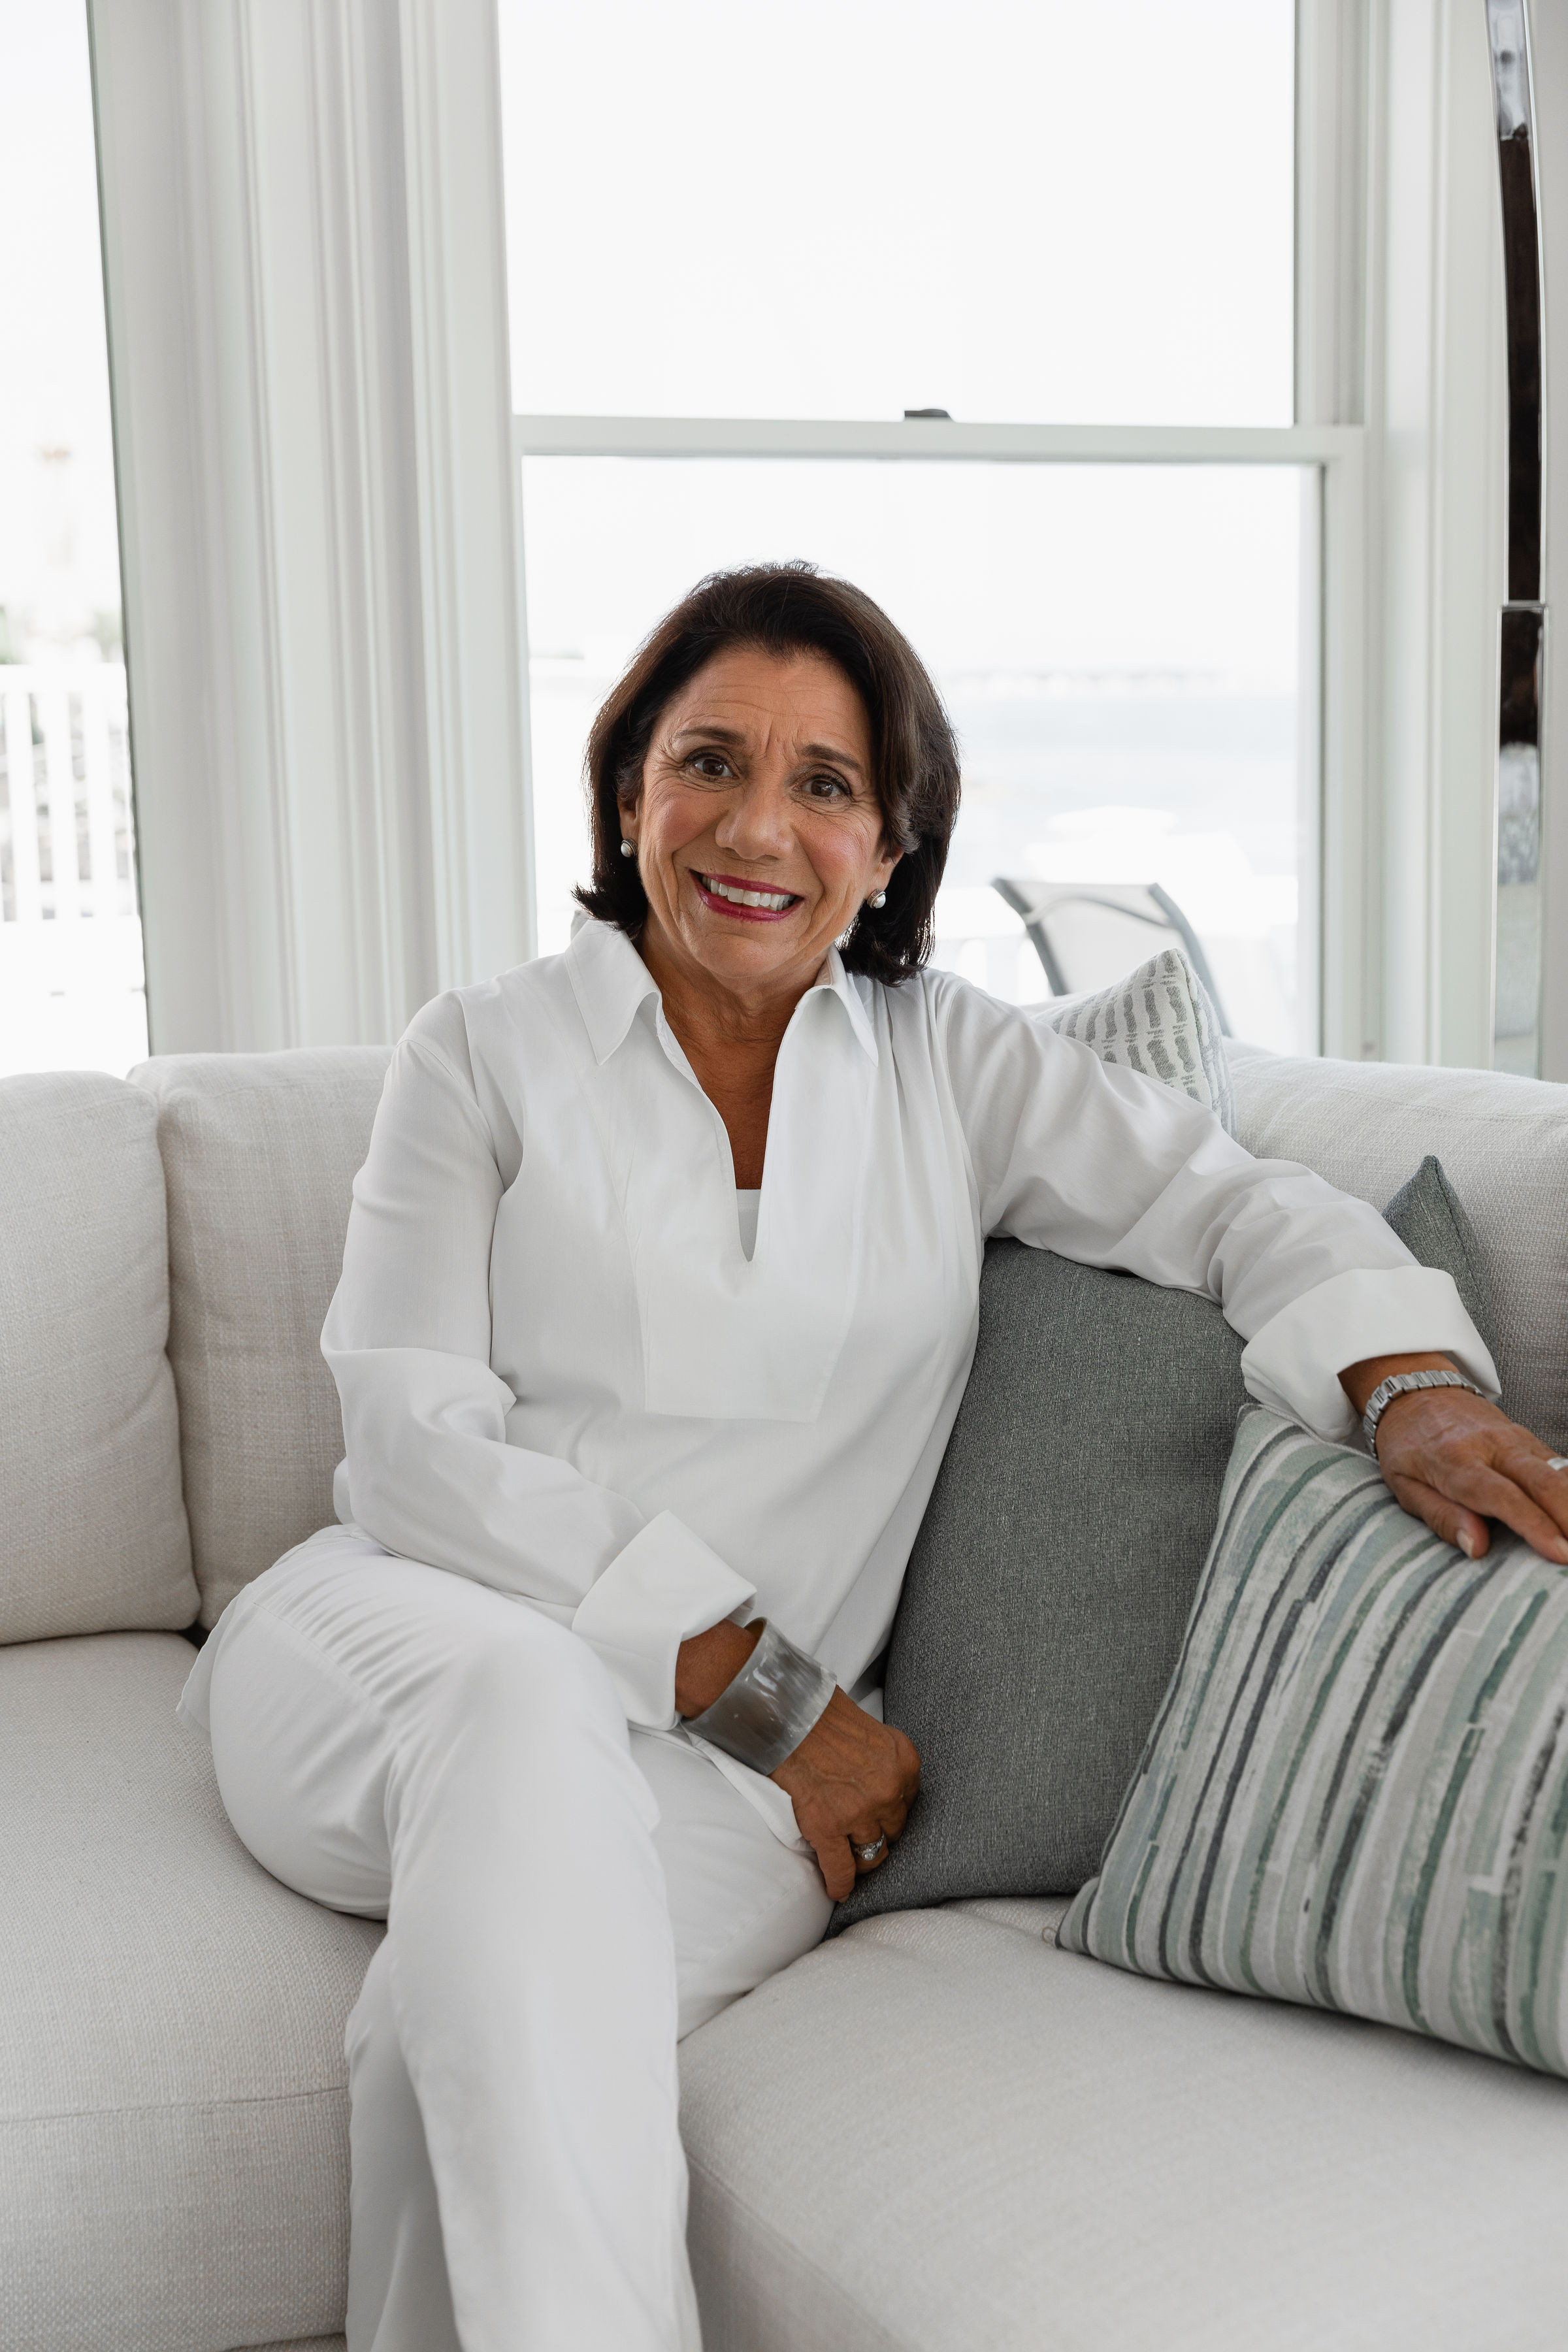 Anita Clark Design  specializes in Interior Architecture, Interior Design and Project Management of high-end residential & commercial projects around Boston.